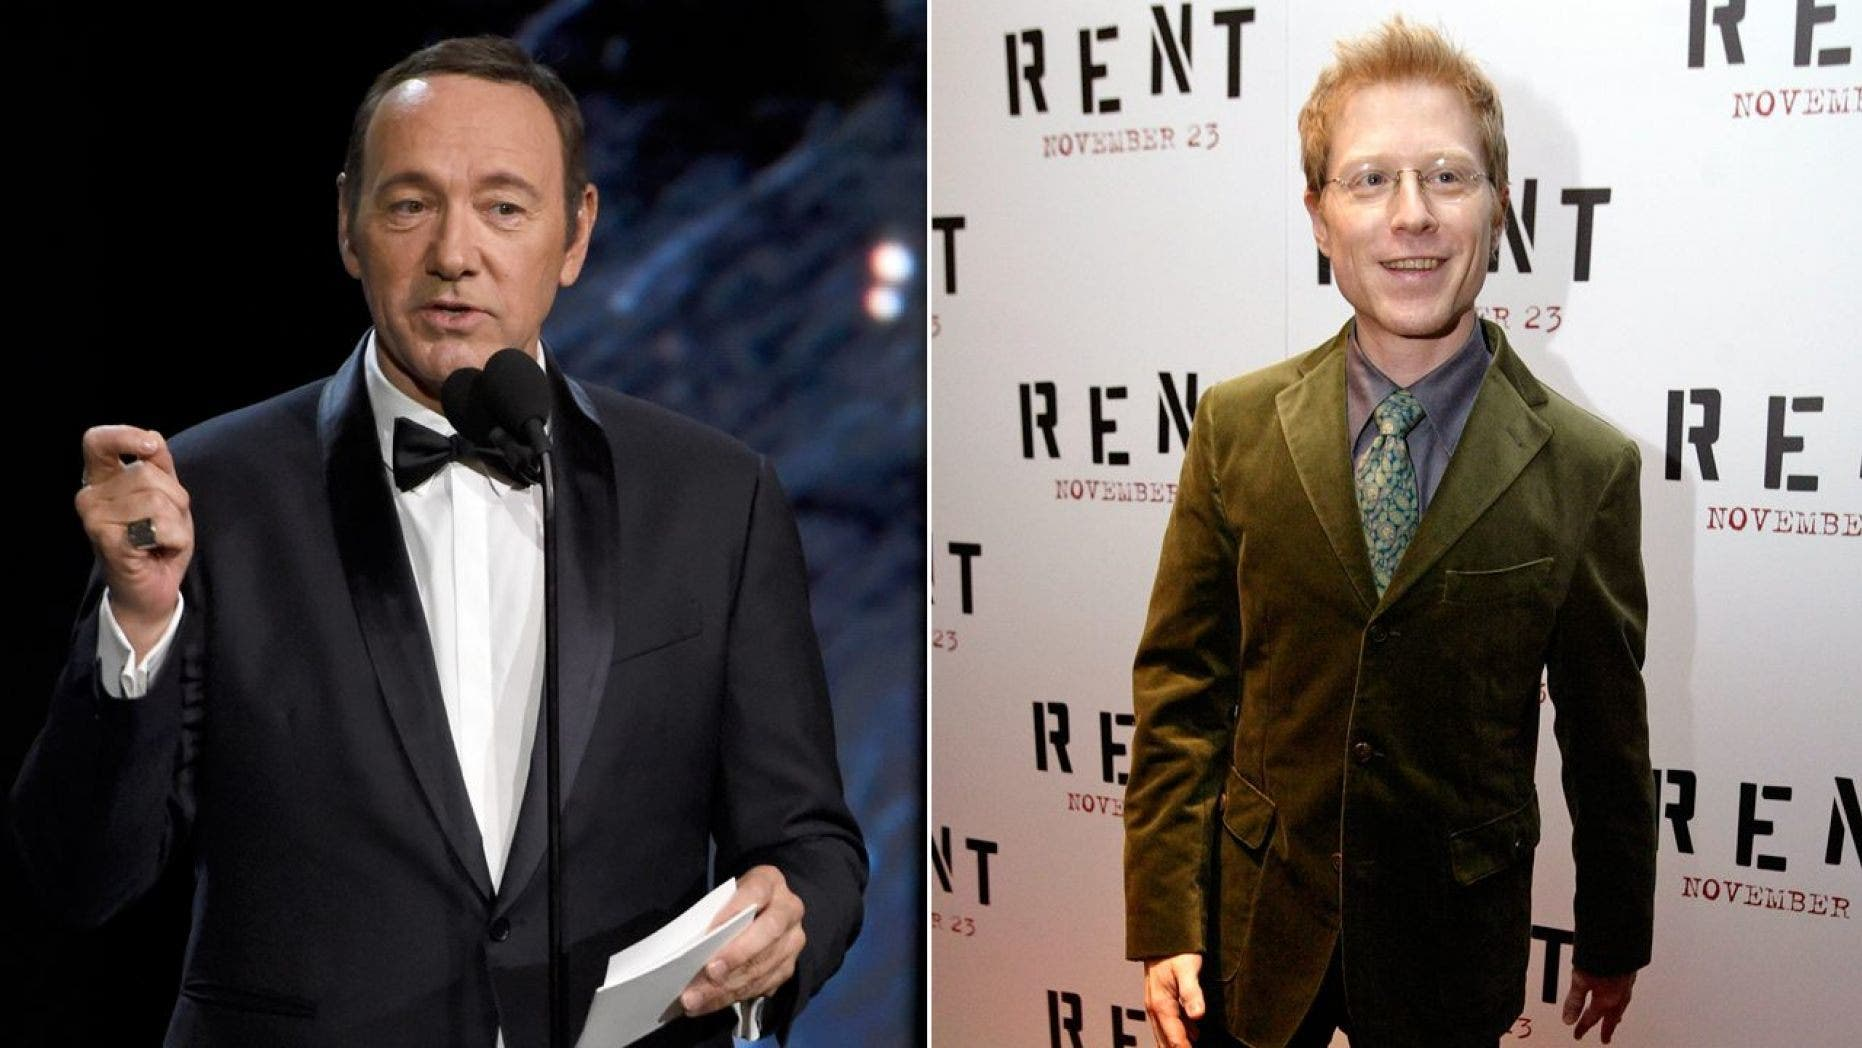 Anthony Rapp, right, said that Kevin Spacey, then 26, made a sexual advance toward him when he was 14 years old.